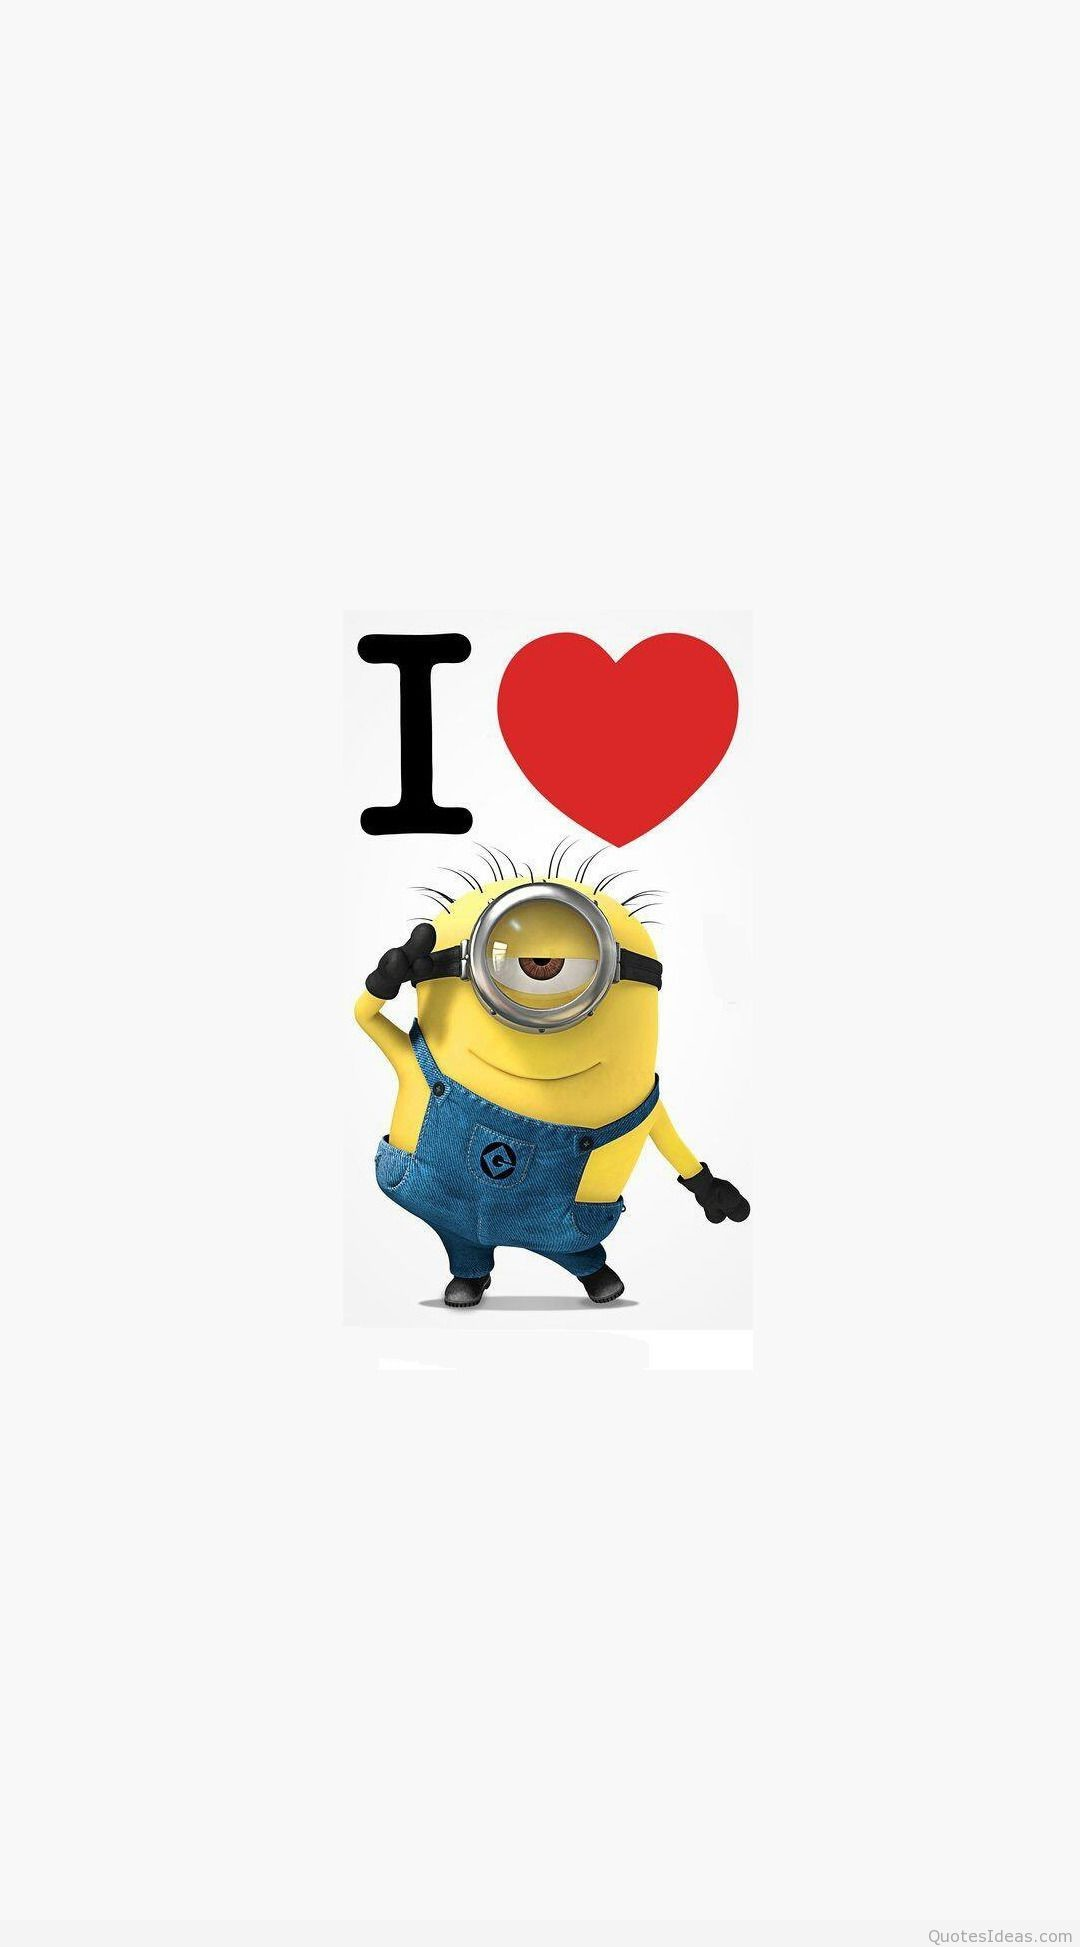 minions hd wallpapers 1080p for iphone - drive.cheapusedmotorhome